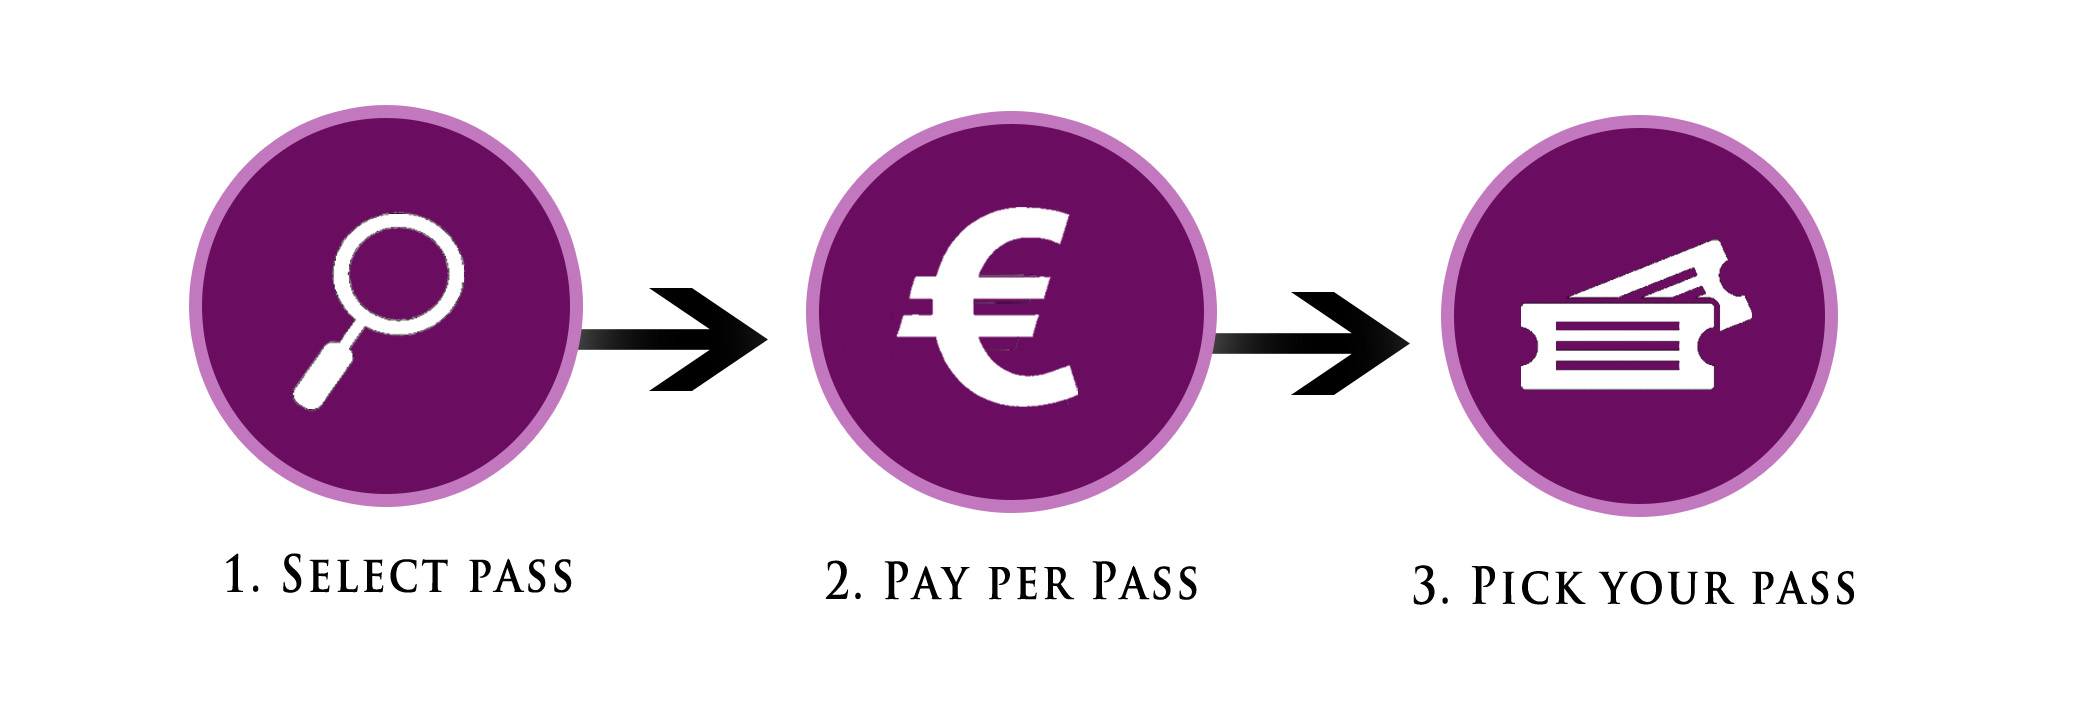 steps for payment.jpg